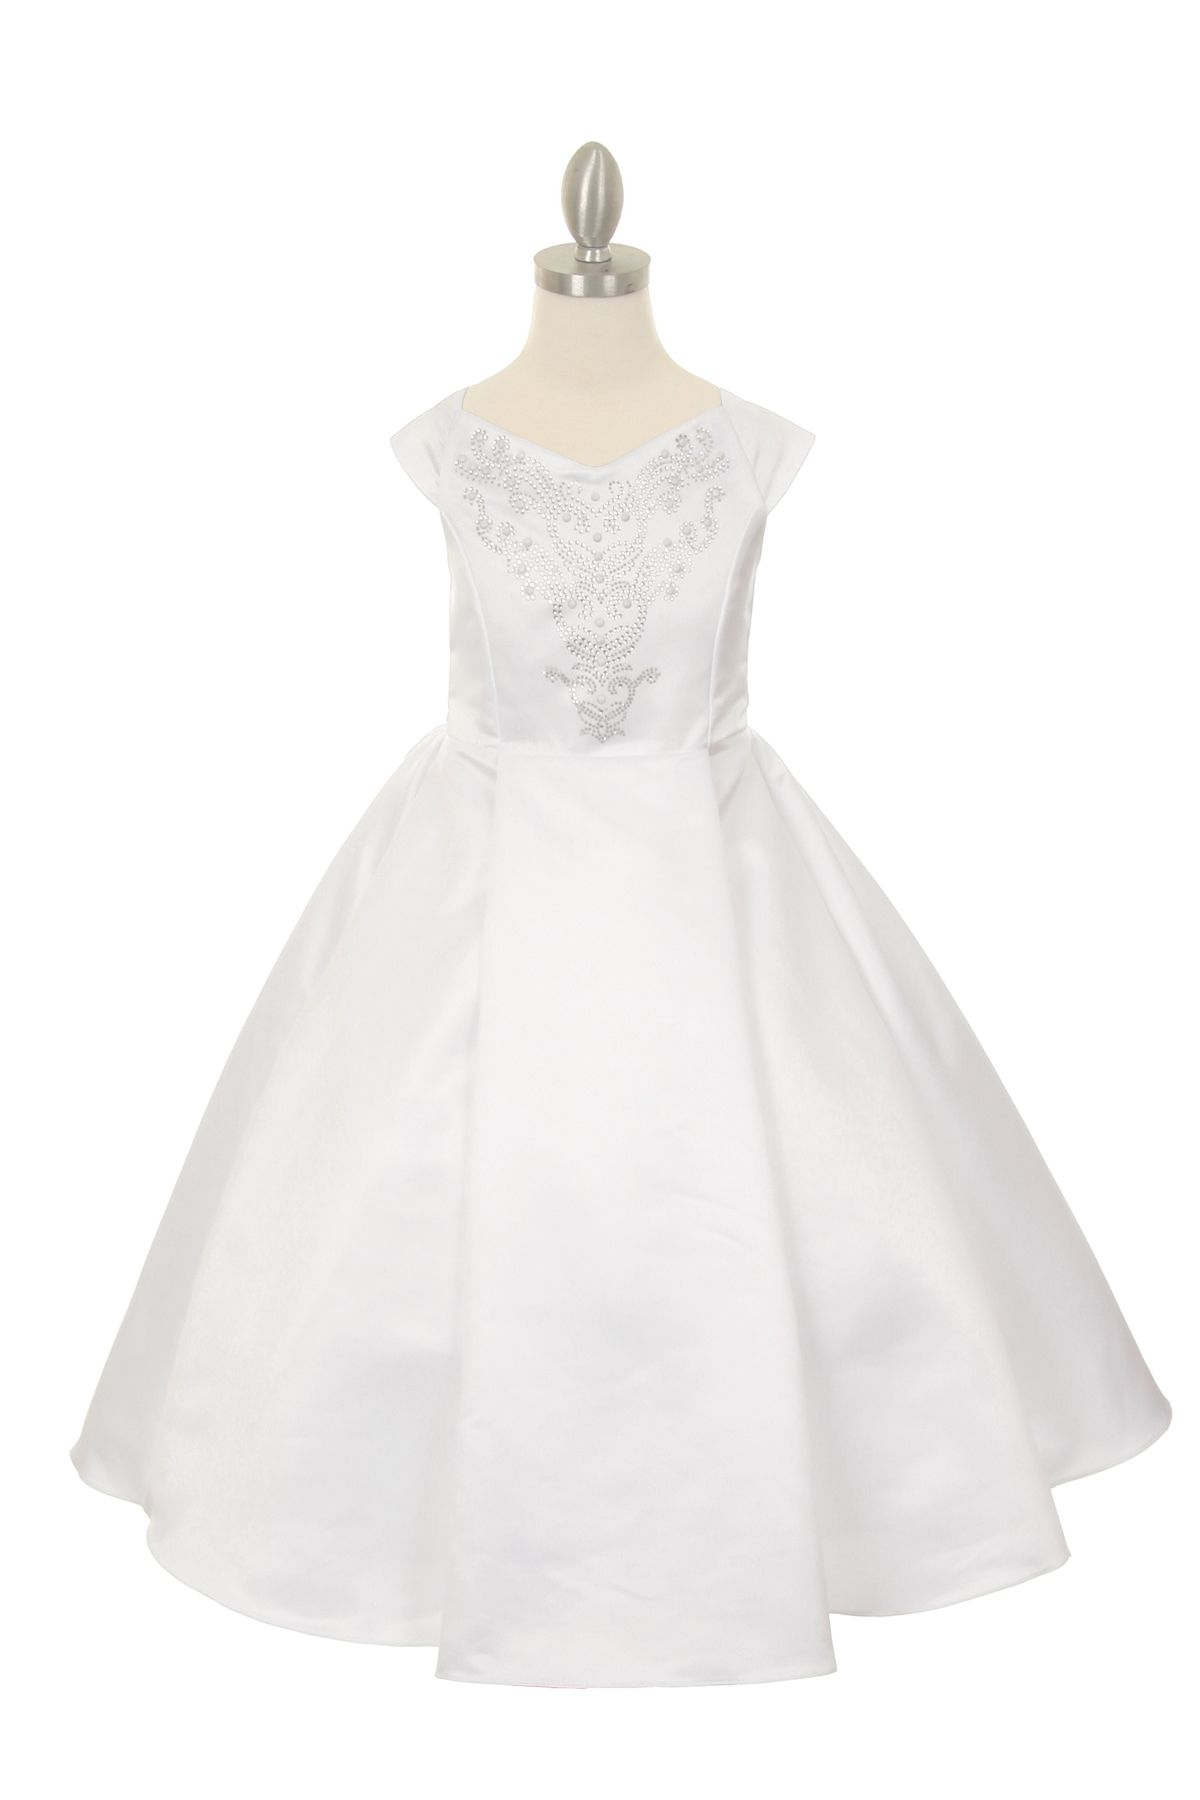 03f08e38e8 Millie  White Flower Girl Communion DressWhite Flower Girl Communion Dress  This white communion dress is made from wedding quality matte satin and  features ...